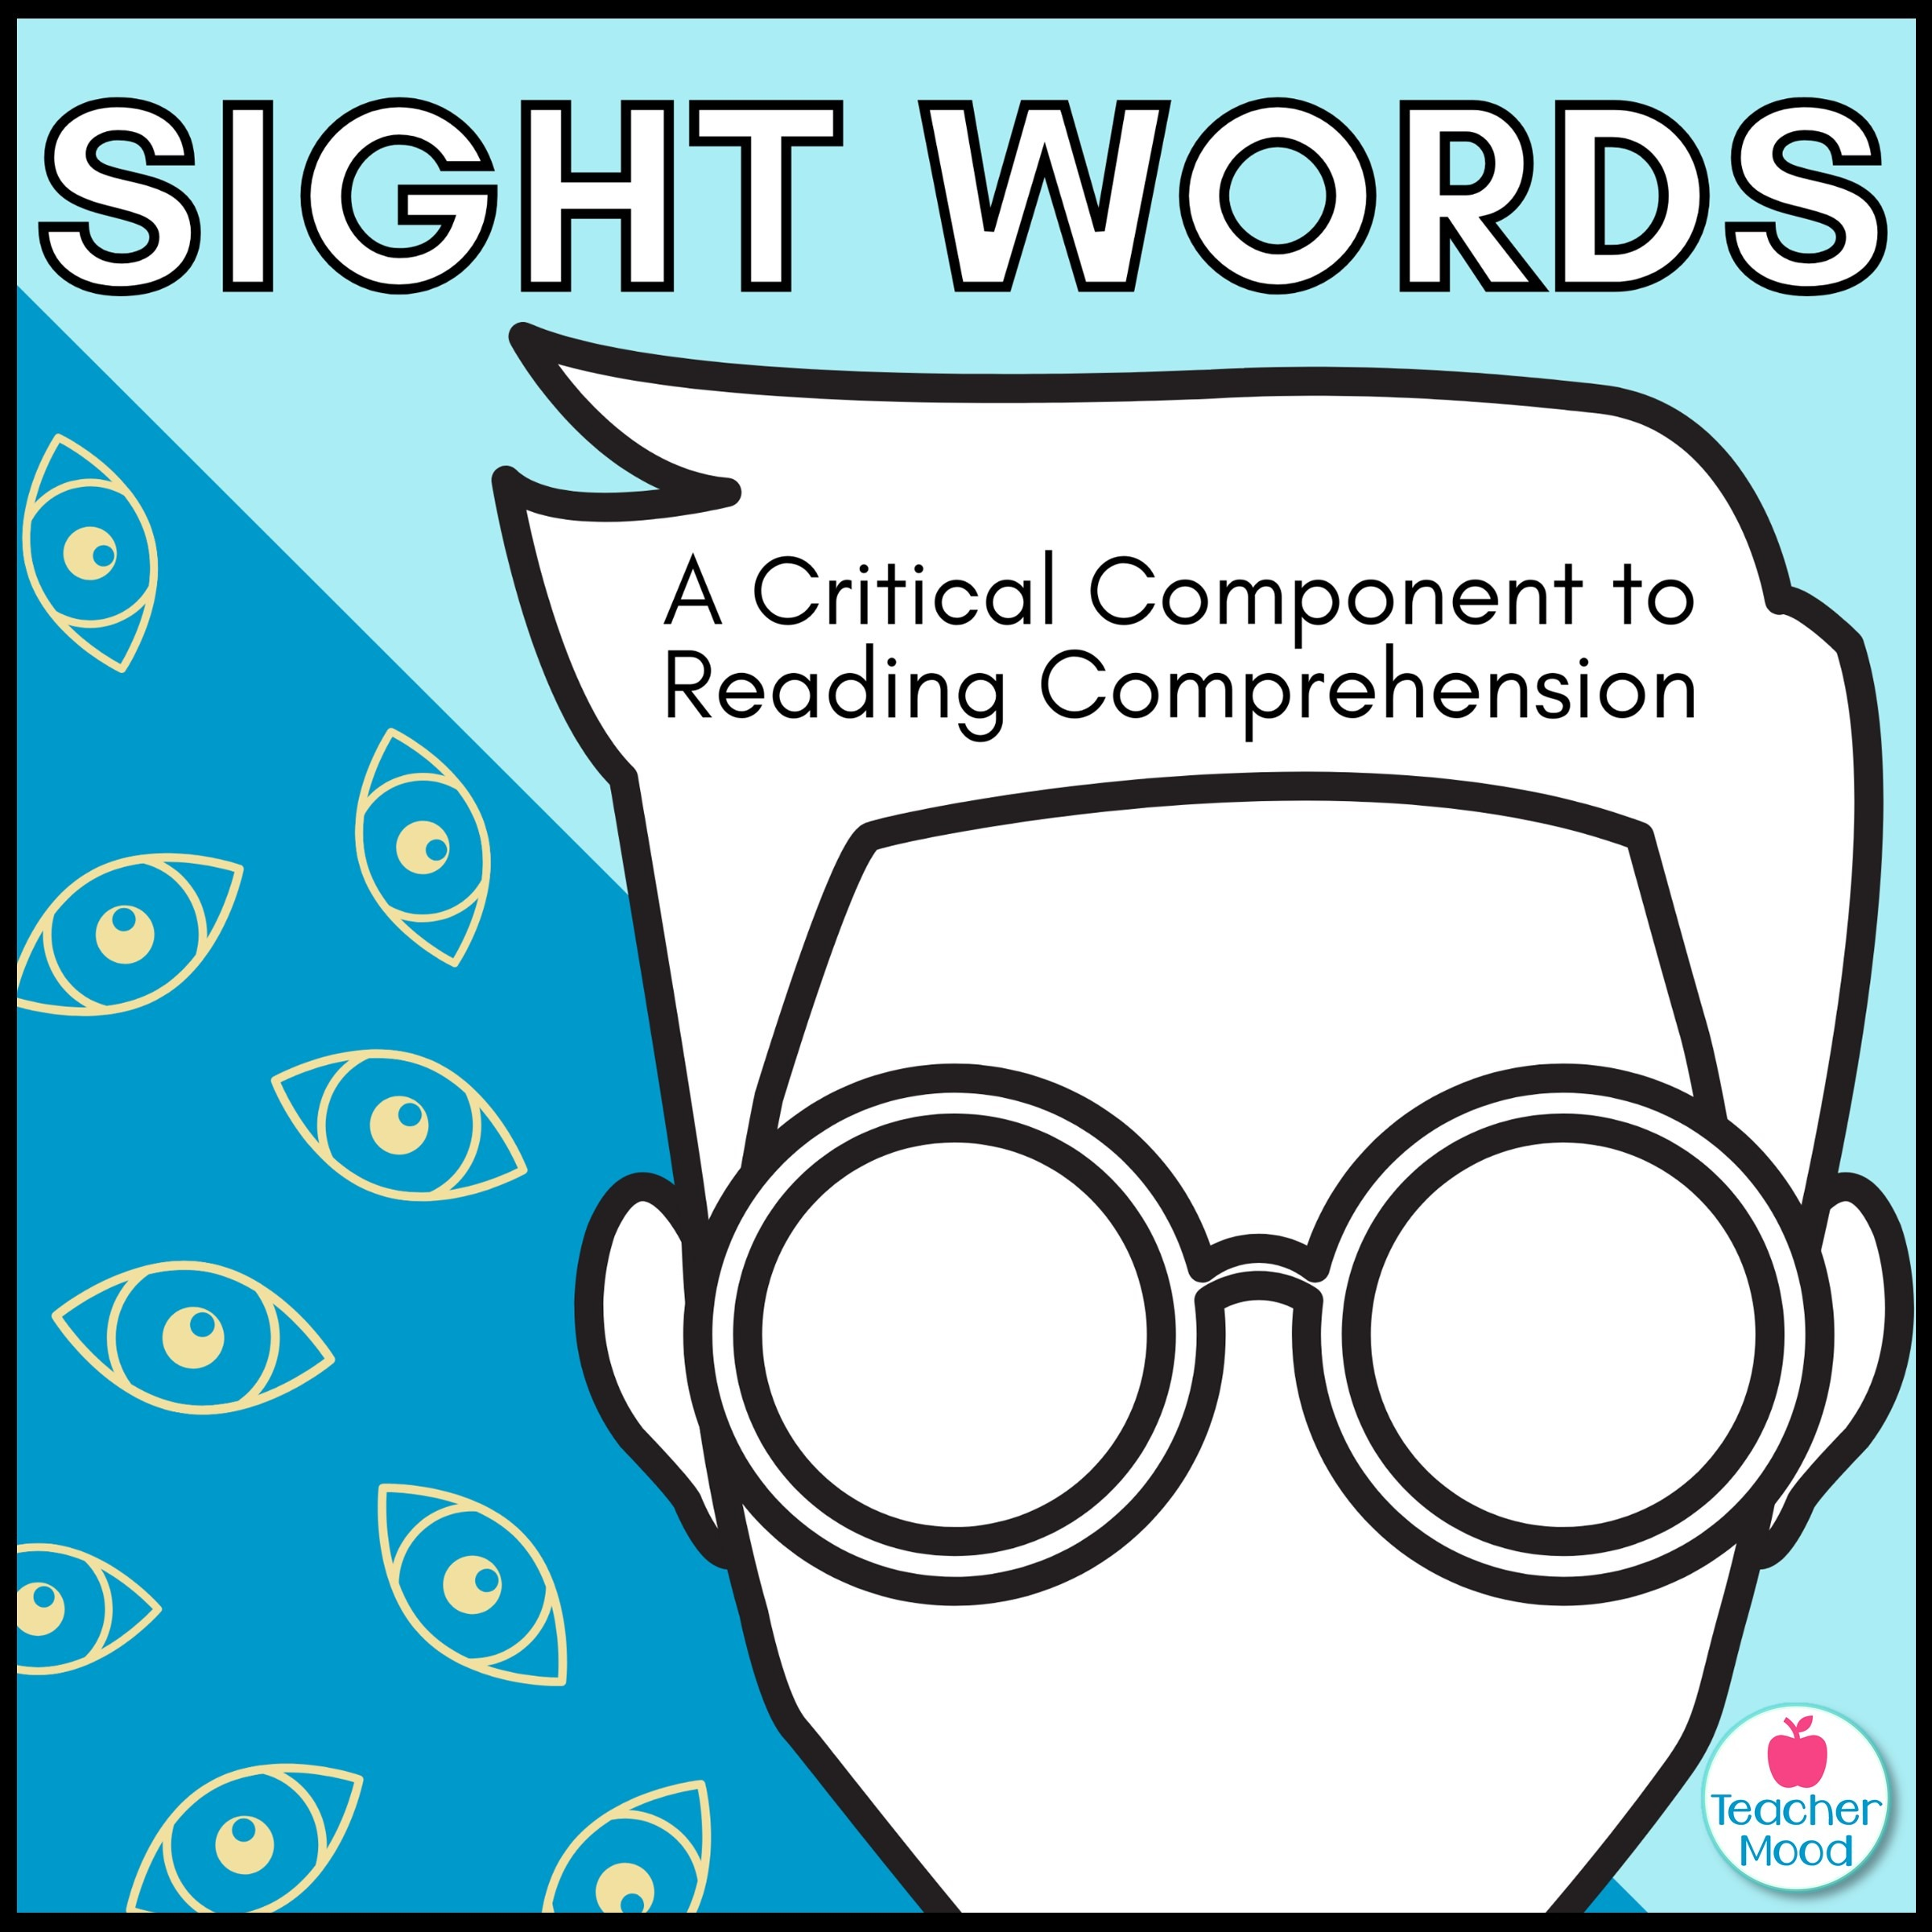 Activities and resources for teaching sight words to beginning readers